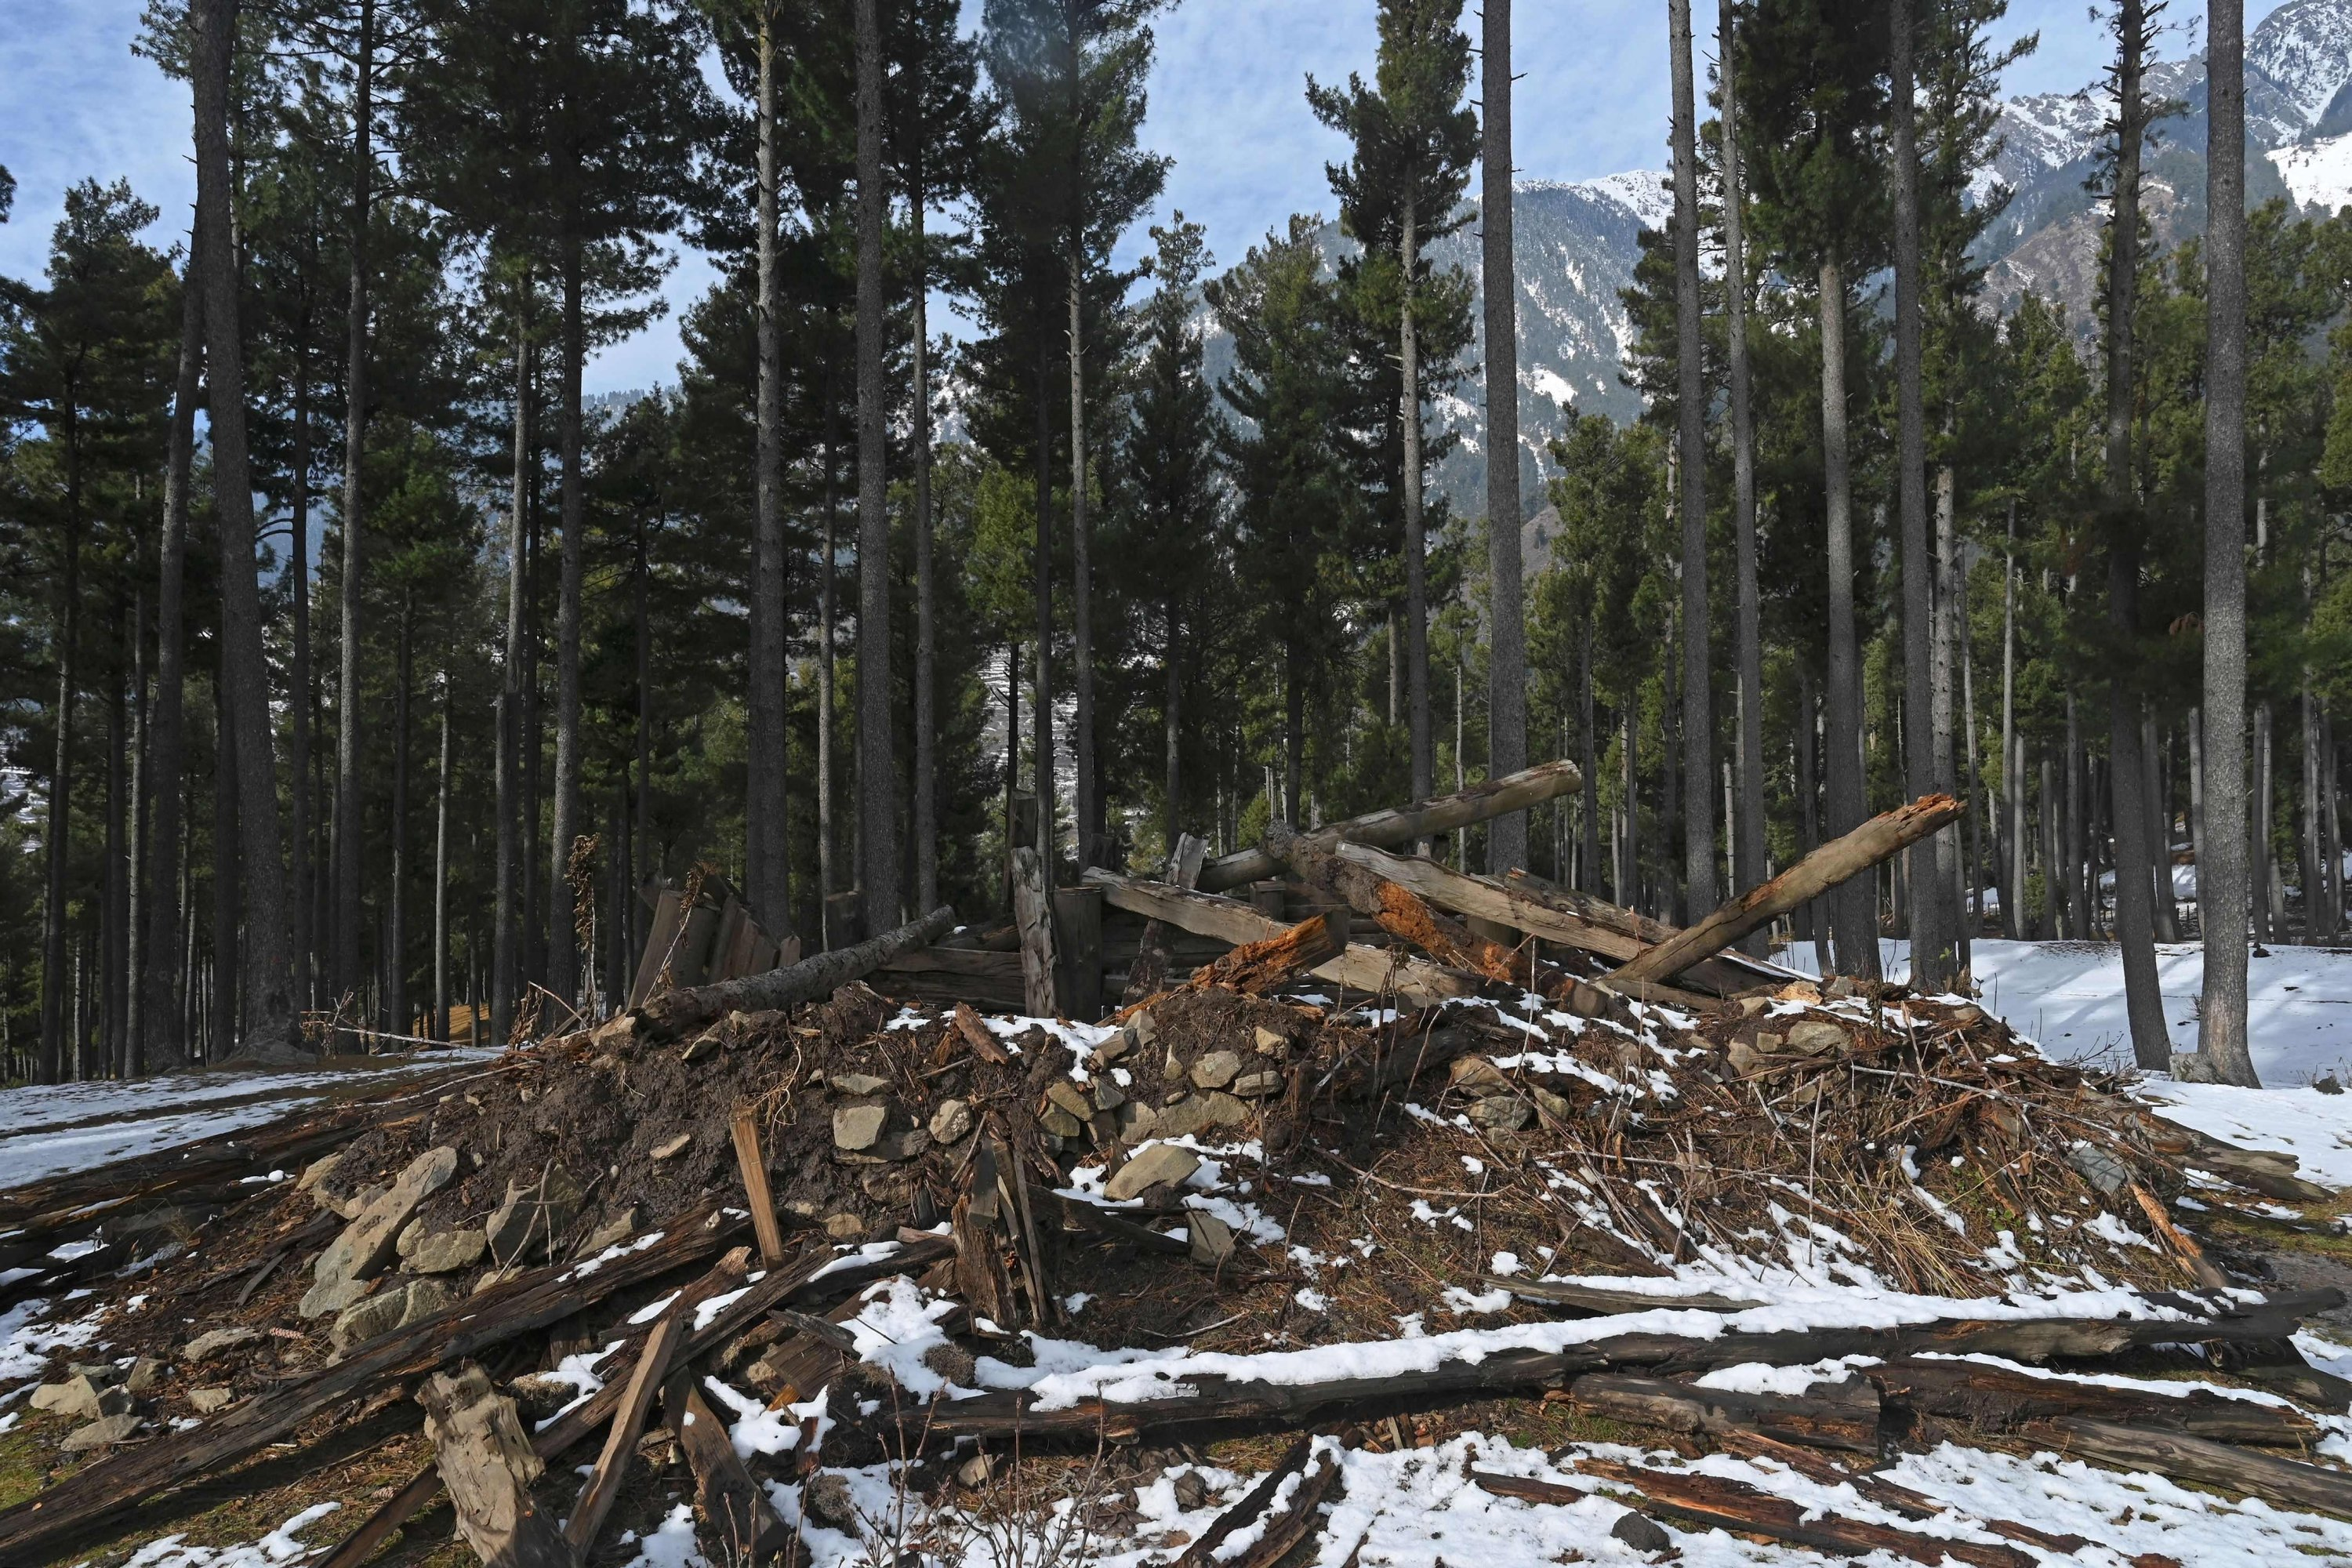 A log house dismantled by forest officials after it was claimed to have been built illegally on encroached forest land is pictured at Lidroo village, Pahalgam in the Anantnag district of Jammu and Kashmir, Dec. 14, 2020. (AFP Photo)